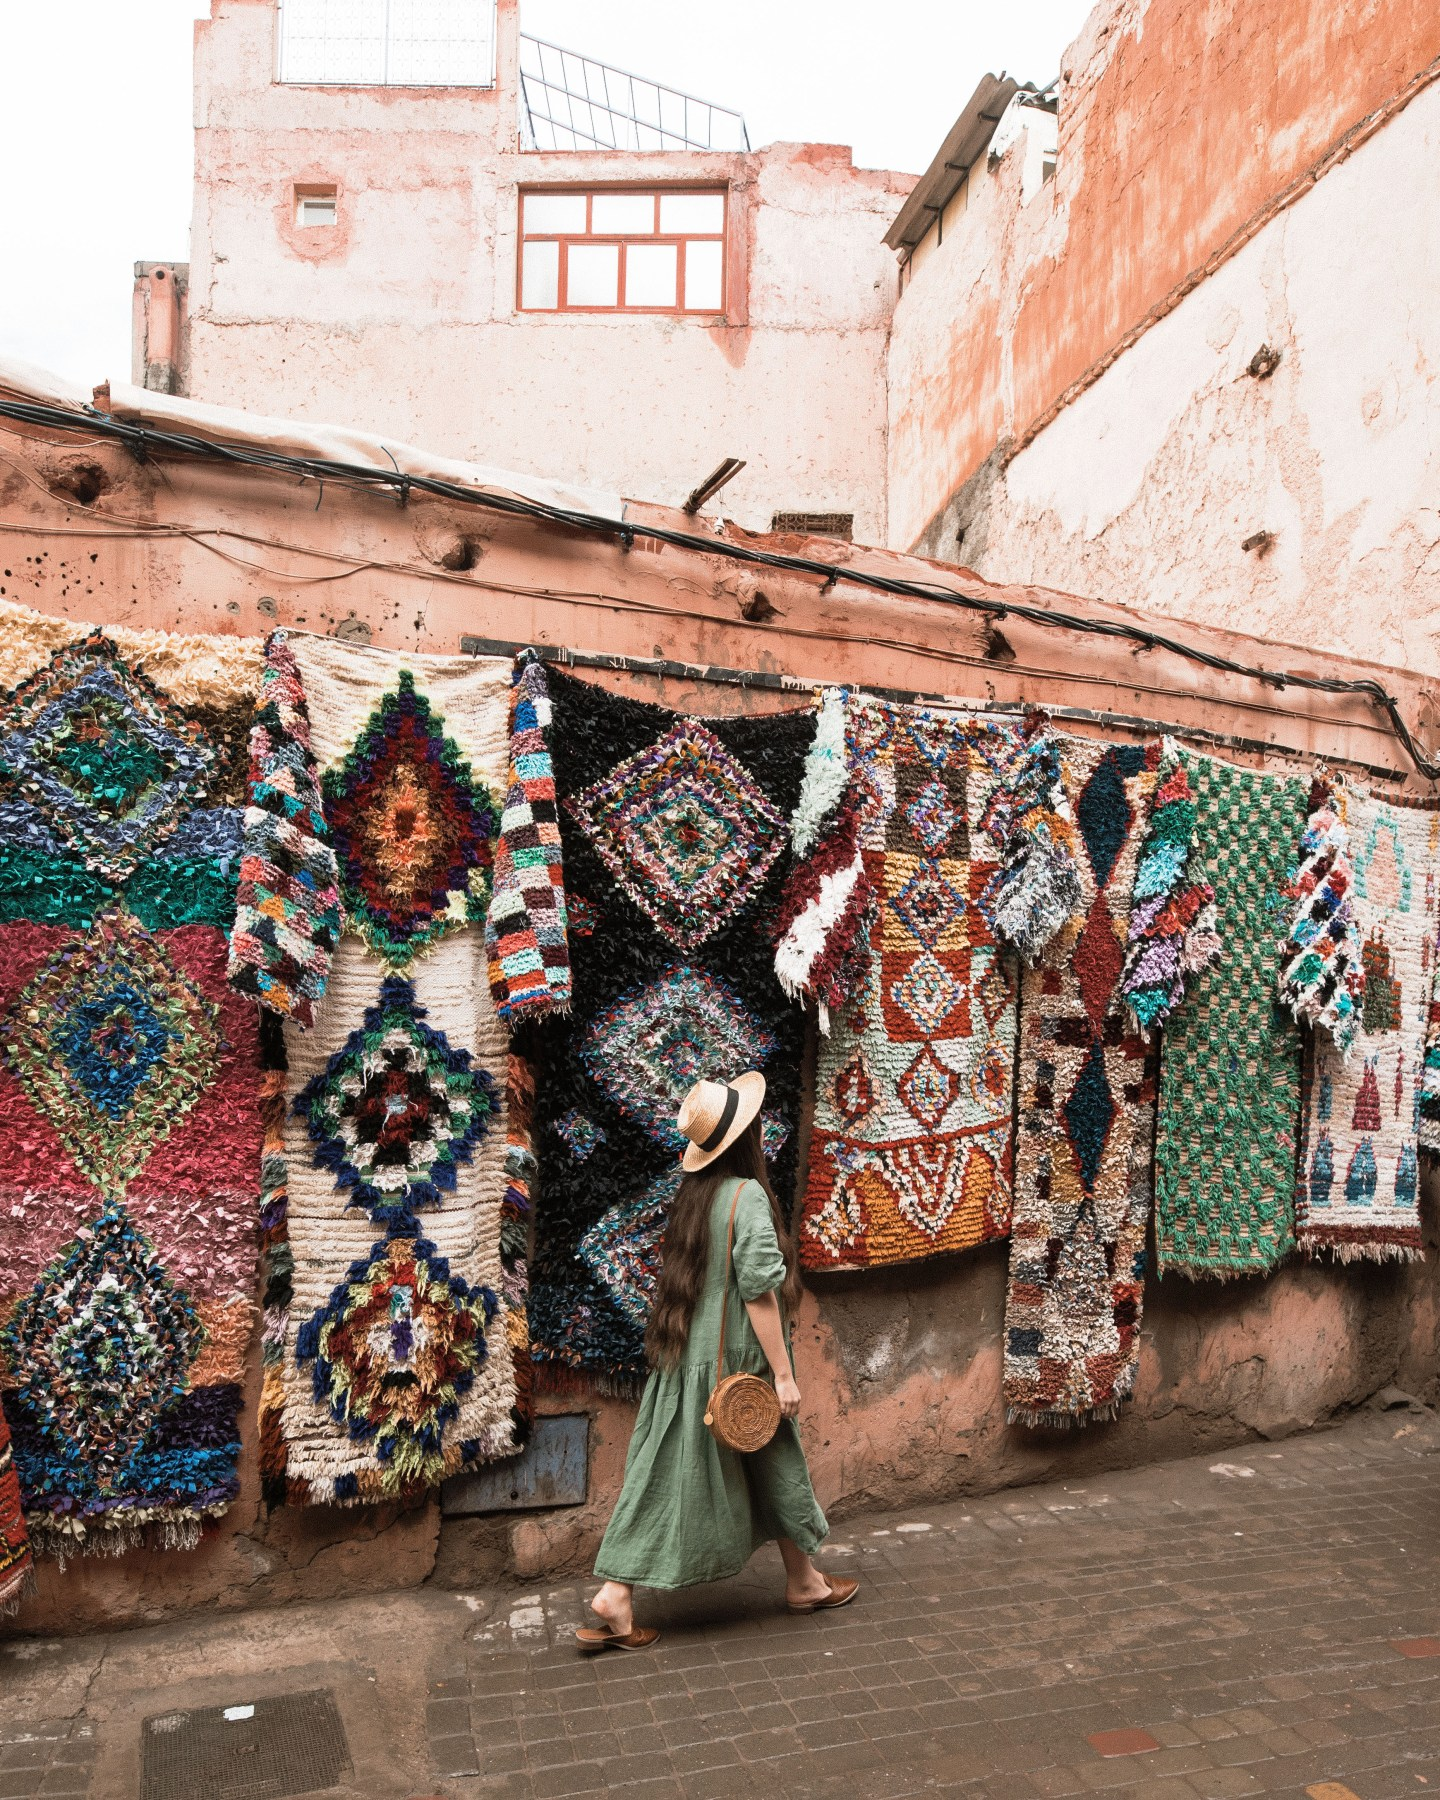 Colorful carpets lining the walls of the Souks in Marrakech